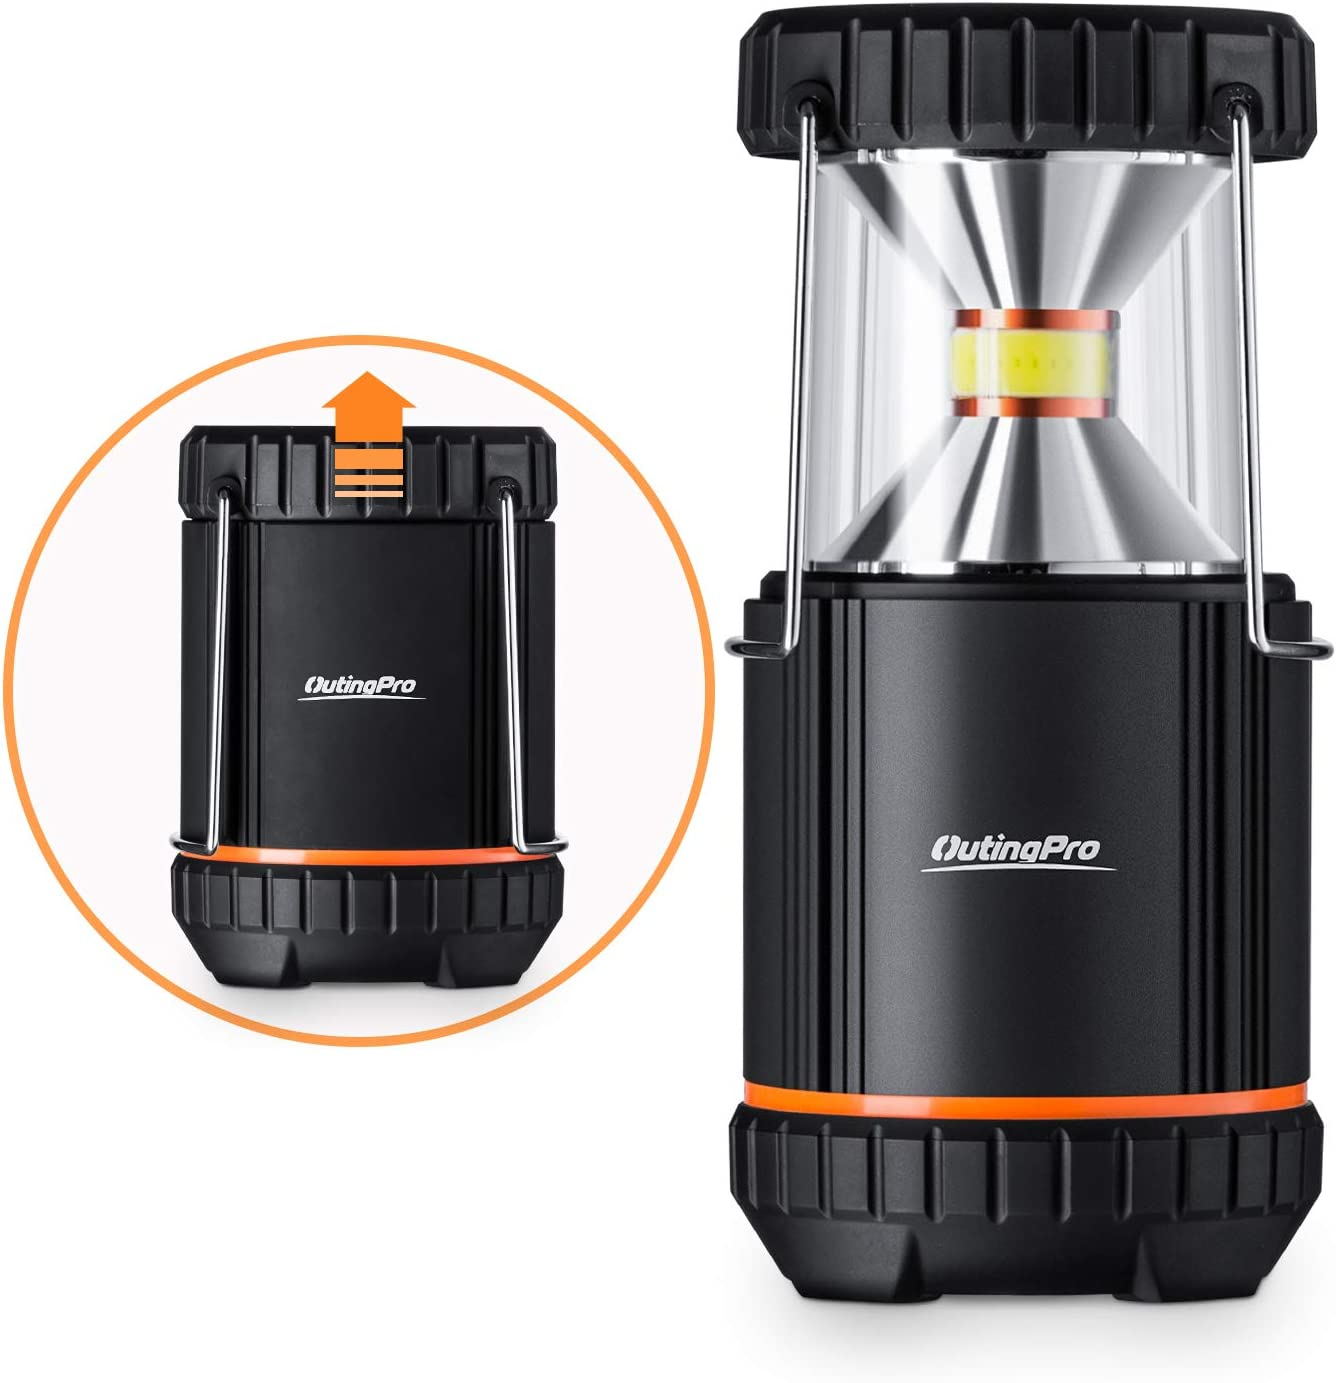 OutingPro LED Camping Lantern, 2 Pack COB Light Ultra Bright Collapsible Lamp Battery Operated Waterproof Portable Hanging Flashlight for Emergencies, Outdoor, Hurricanes, Outages, Storms